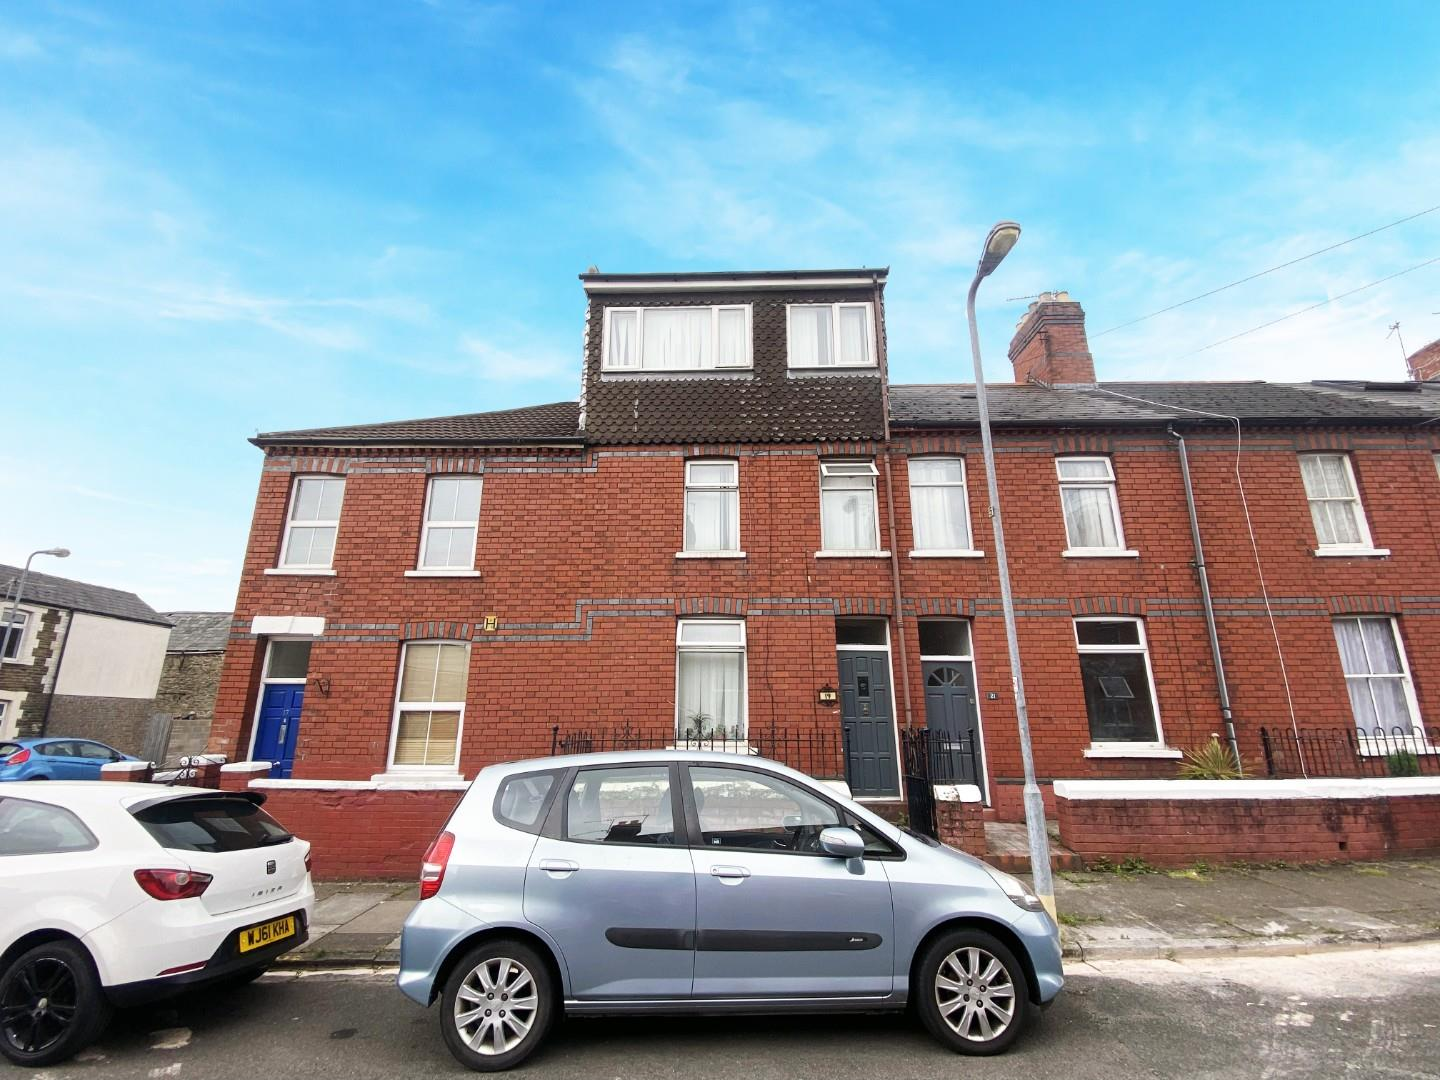 4 bed terraced house to rent in Florentia Street, Cardiff, CF24